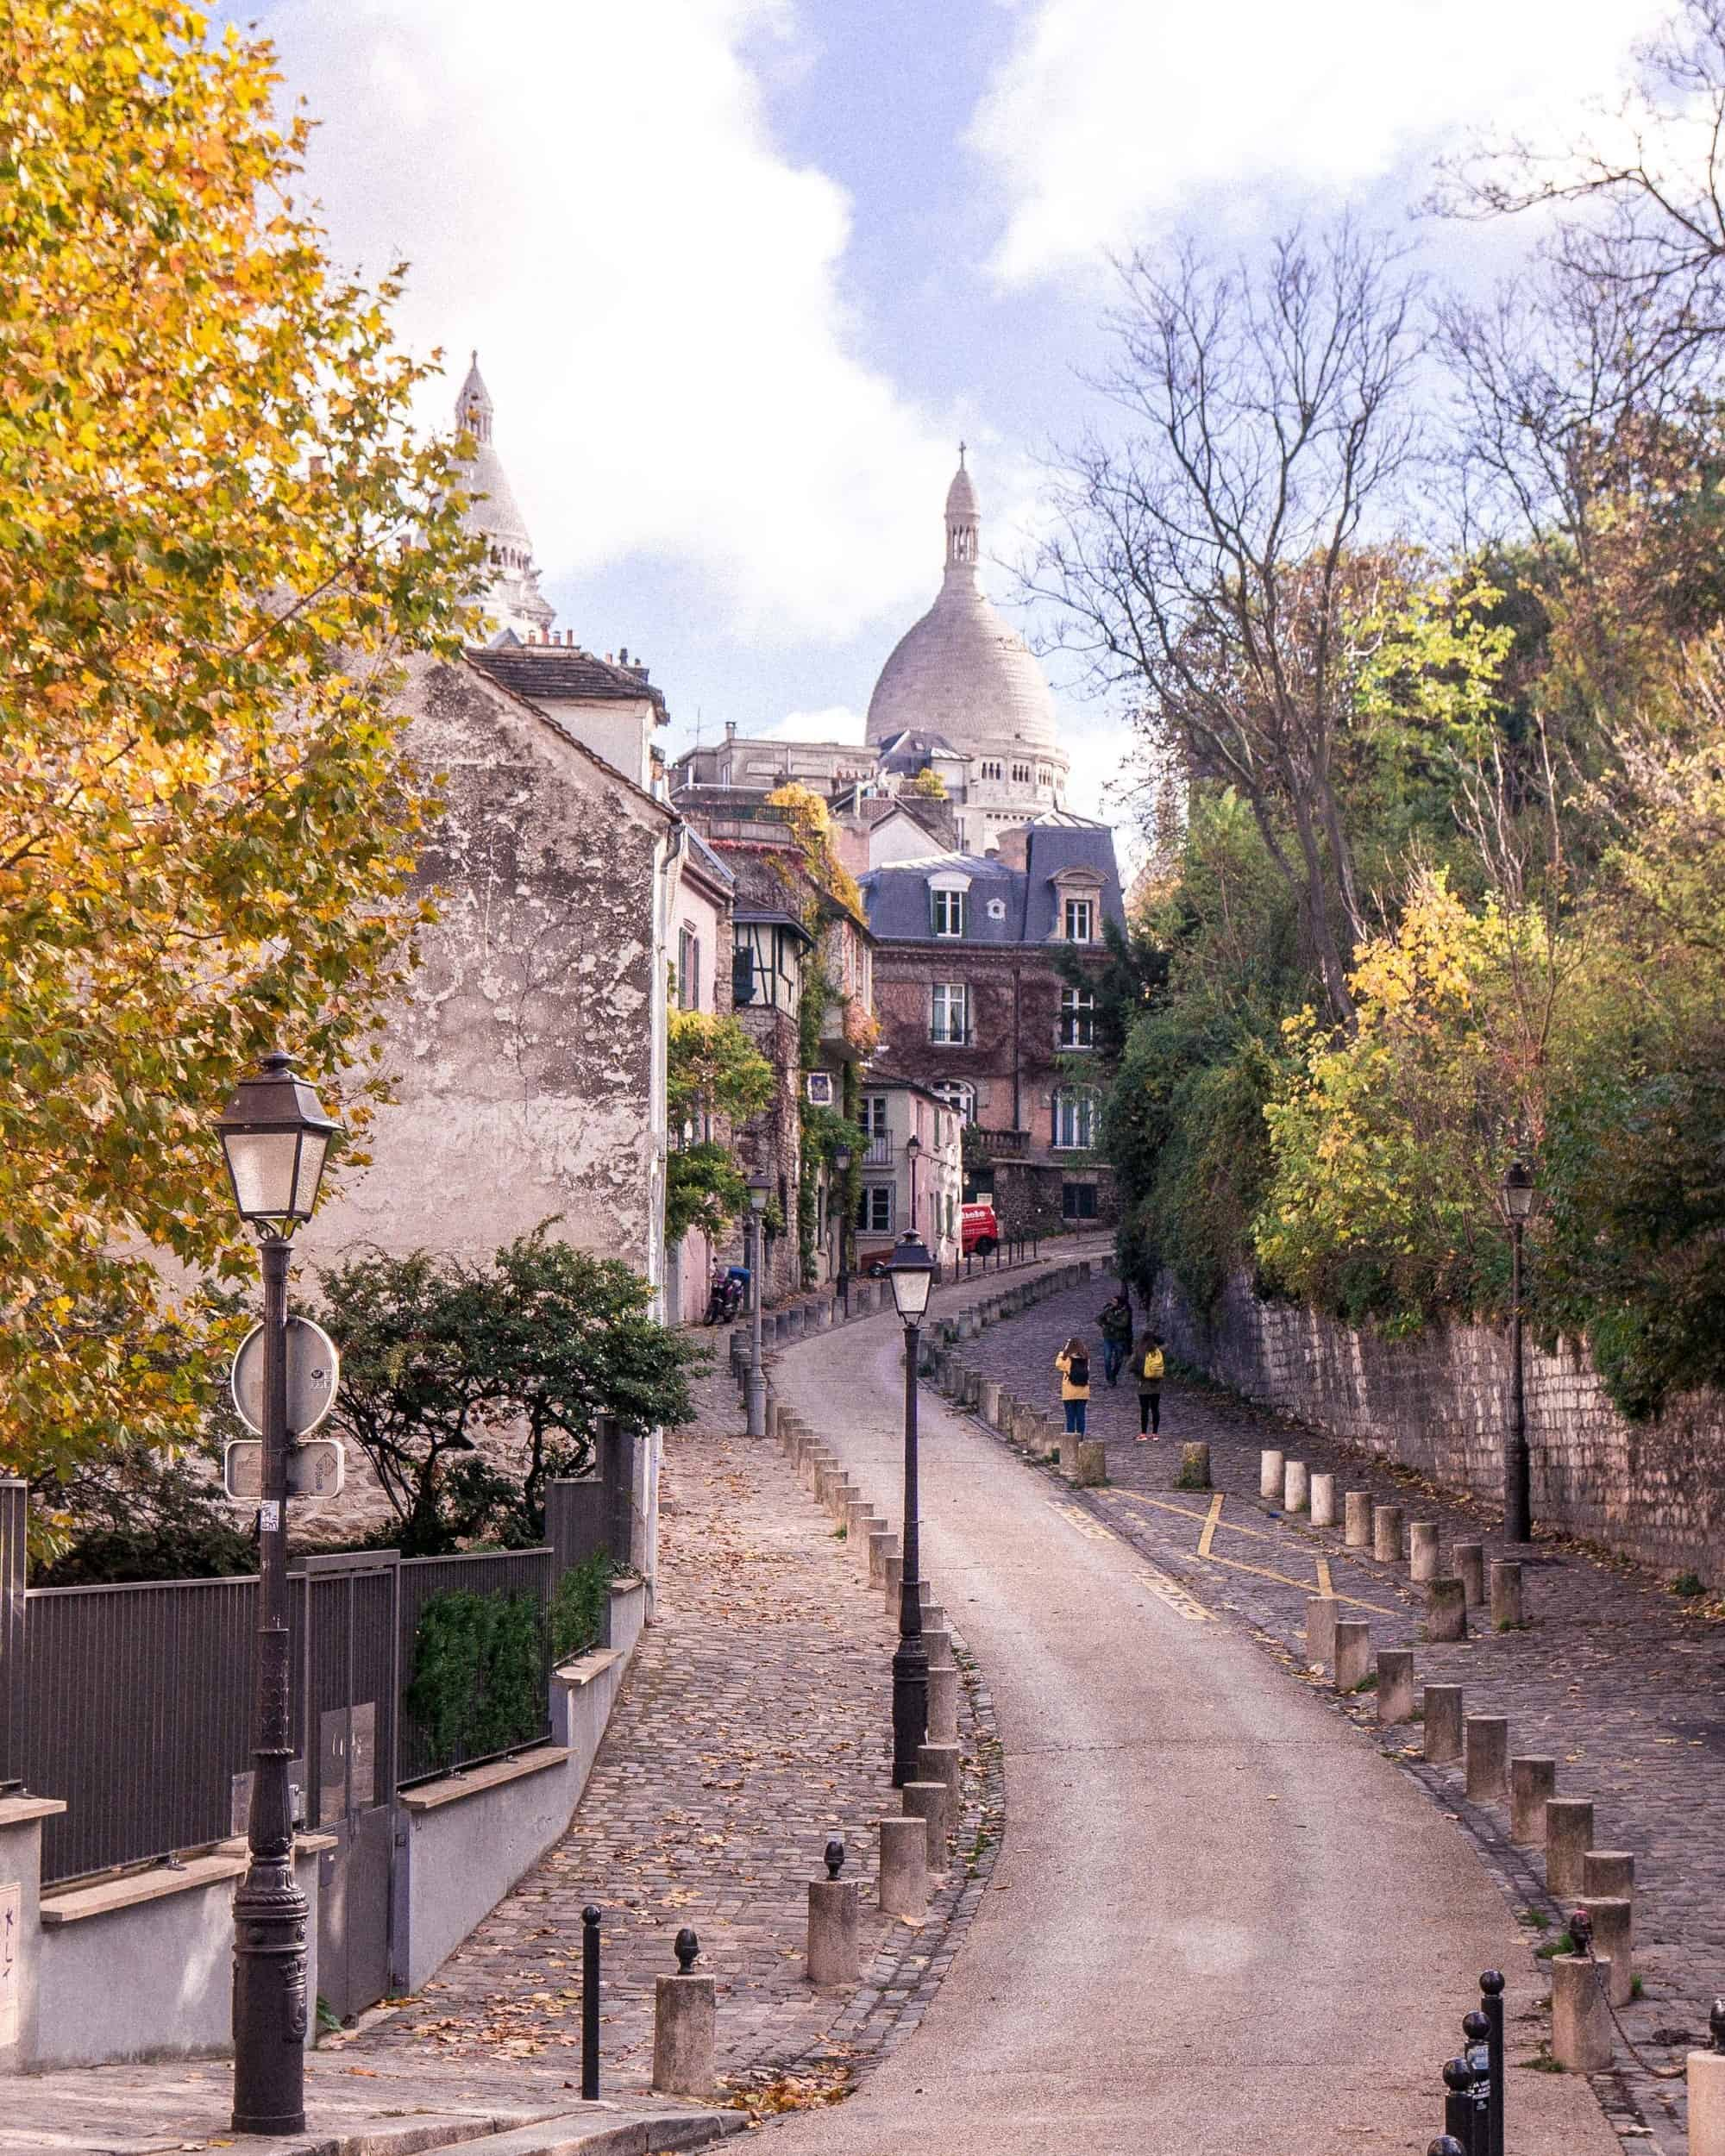 Solo Travel Guide: Best Things to do in Paris on your Own! Here are the top attractions to enjoy Paris, France alone; visiting a coffee shop, exploring museums, taking yourself on a self-guided walking tour of the city